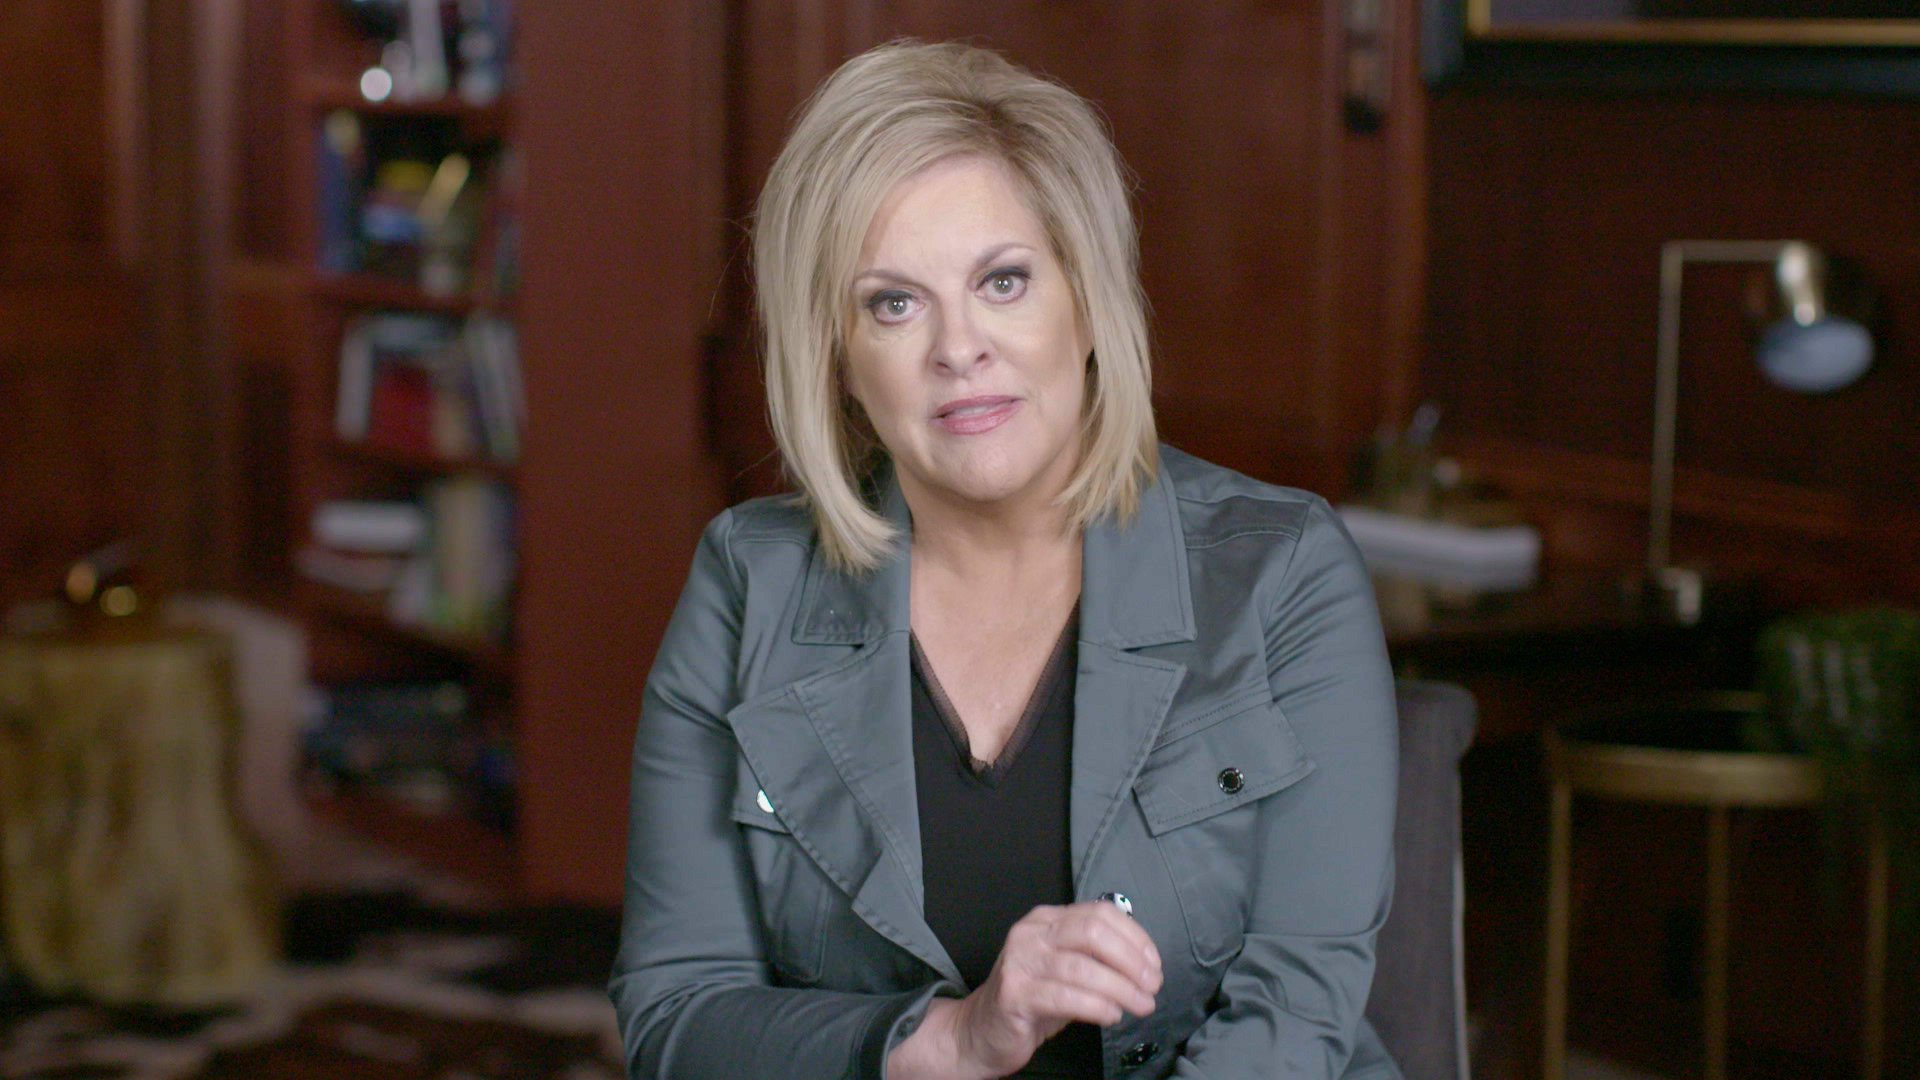 Injustice With Nancy Grace Bonus: A Suspicious Car Wreck The Night Of Emily Mason's Murder